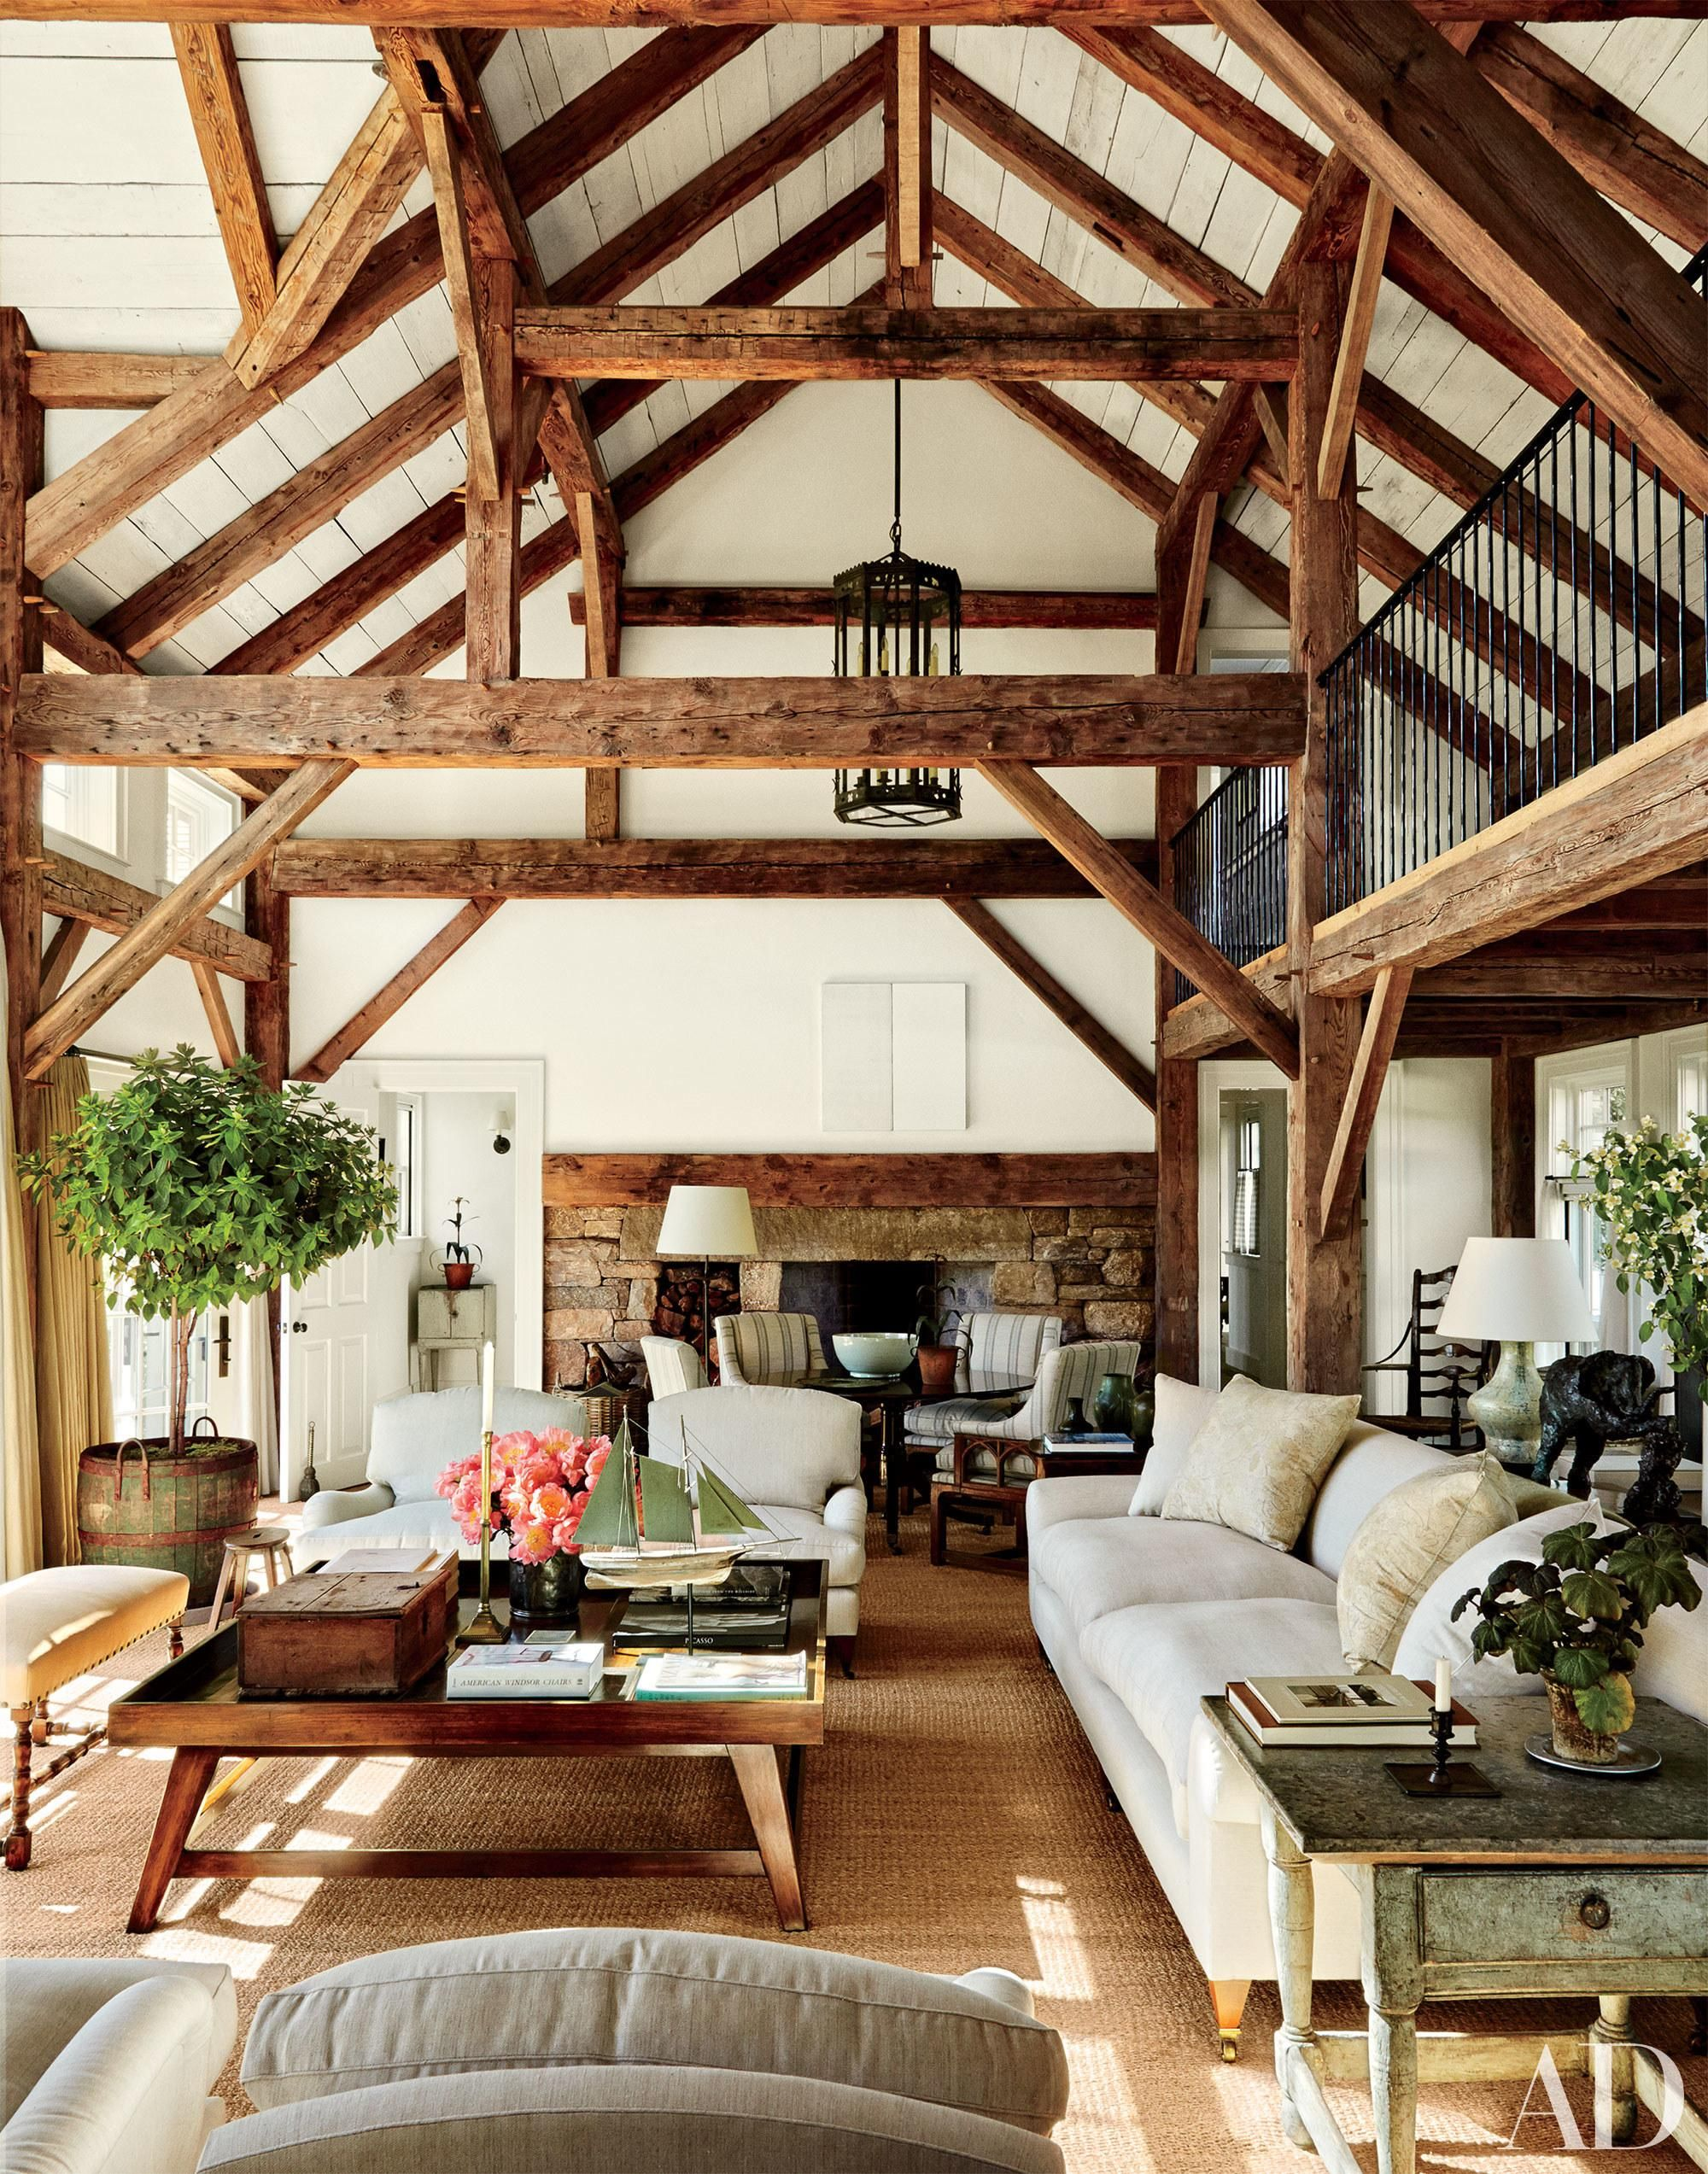 Marvelous 8 Serene, Stylish Rooms Decorated By Mark Cunningham Inc.